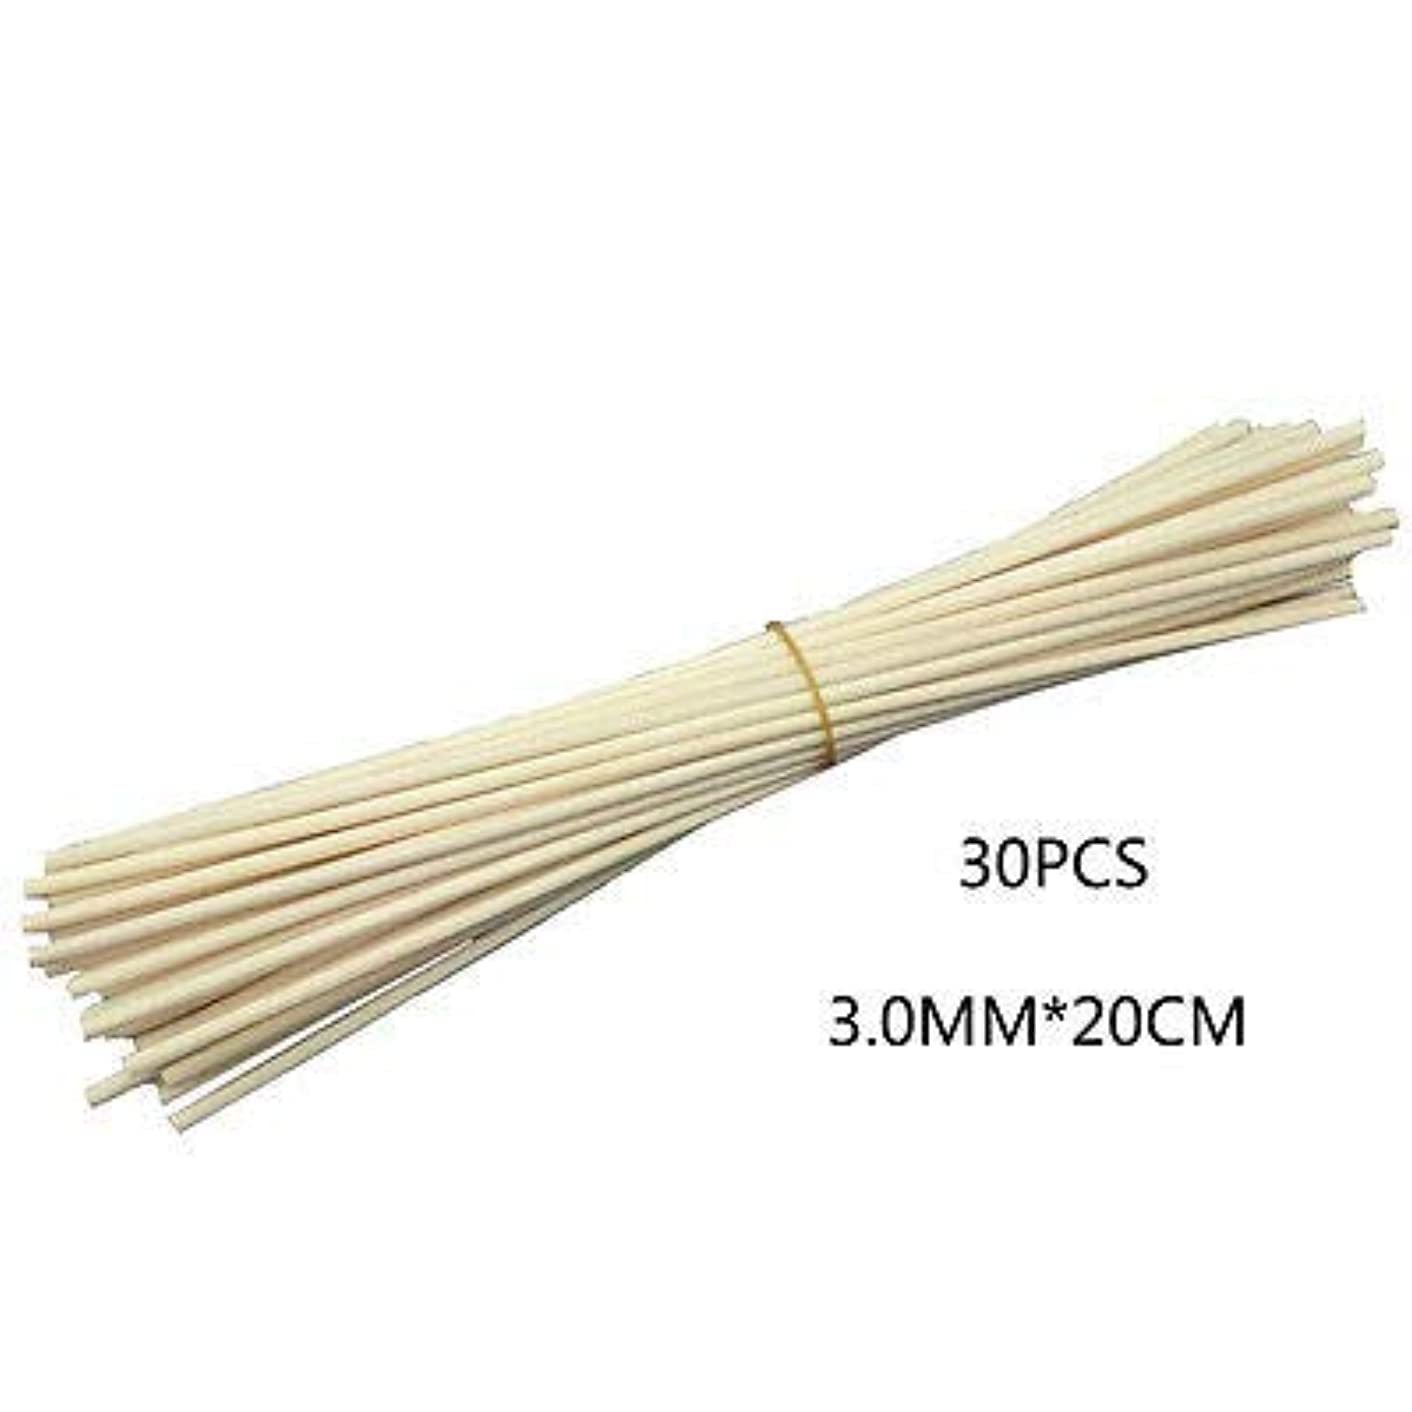 メジャー滑りやすい略語FidgetGear 30Pcs/100Pcs Reed Fragrance Oil Diffuser Rattan Sticks Aroma Rattan Wooden 30 Pcs